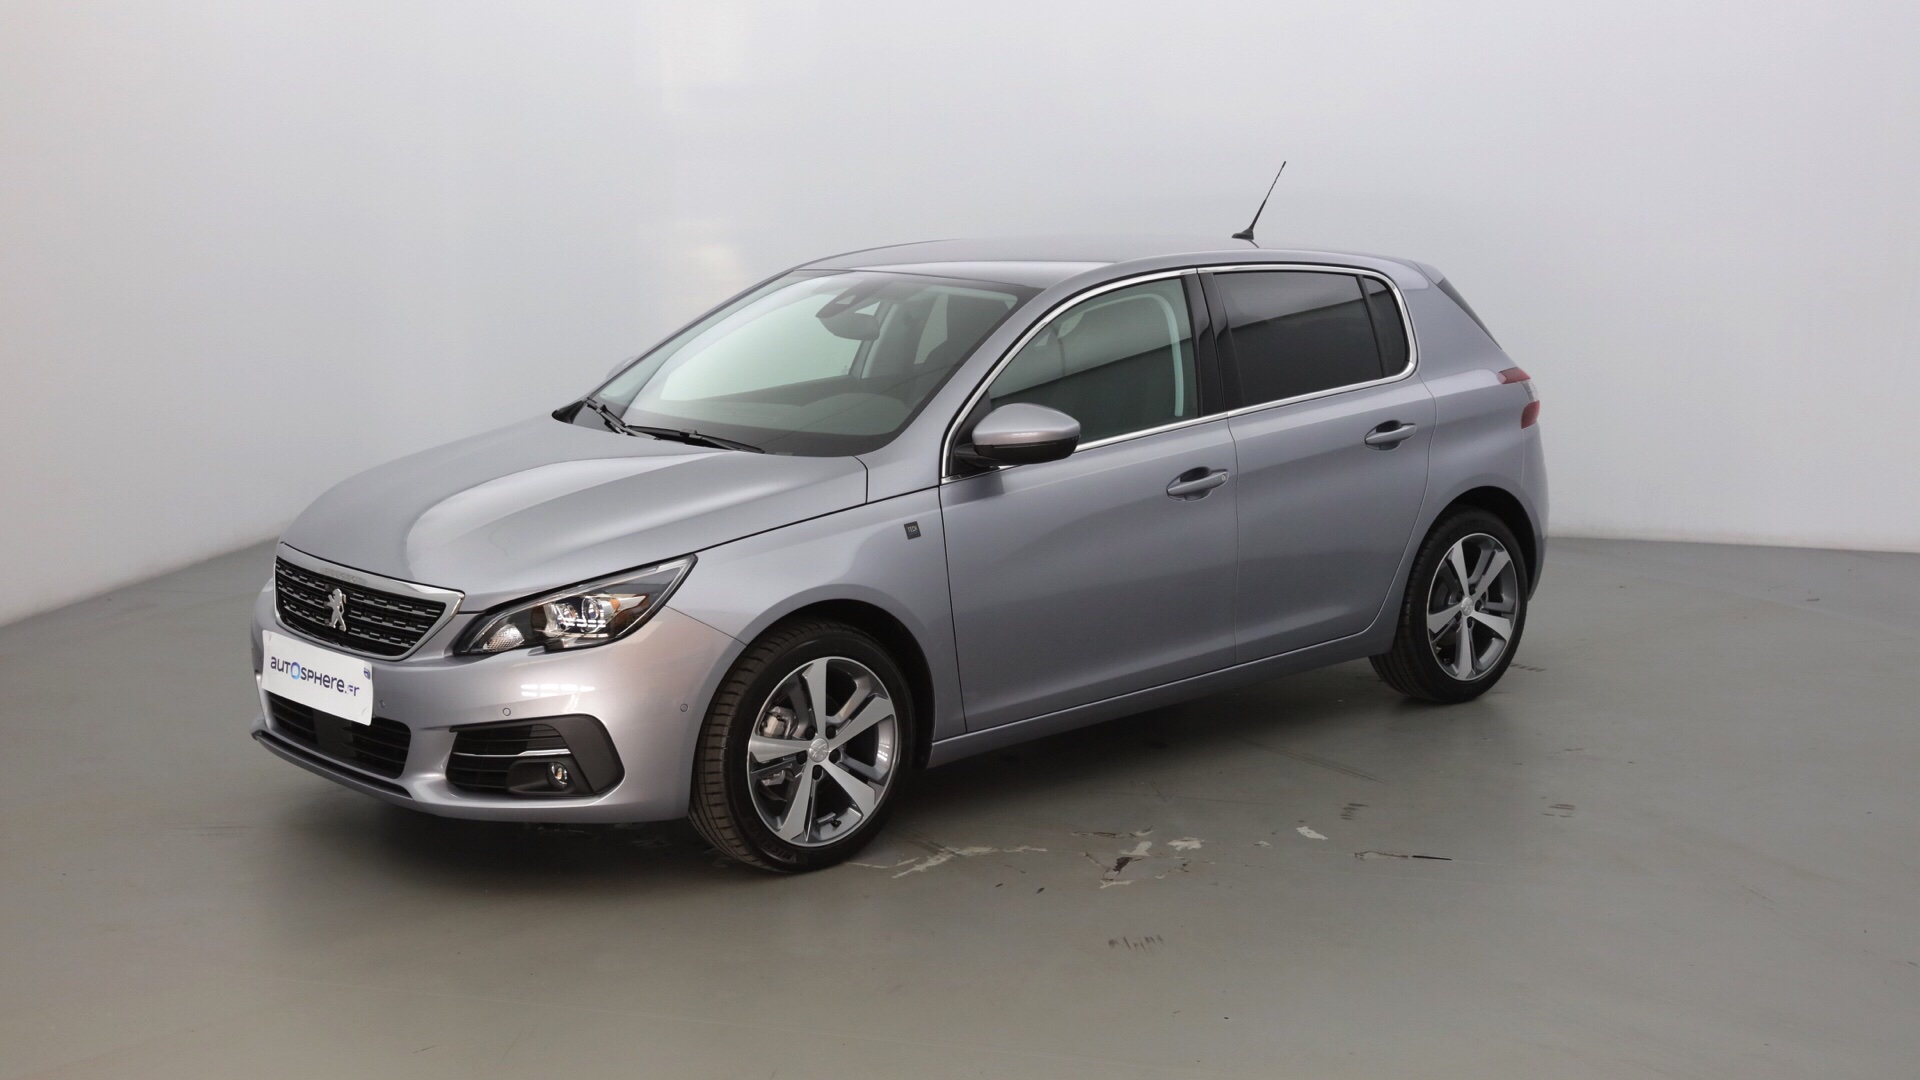 PEUGEOT 308 1.5 BLUEHDI 130CH S&S TECH EDITION - Photo 1